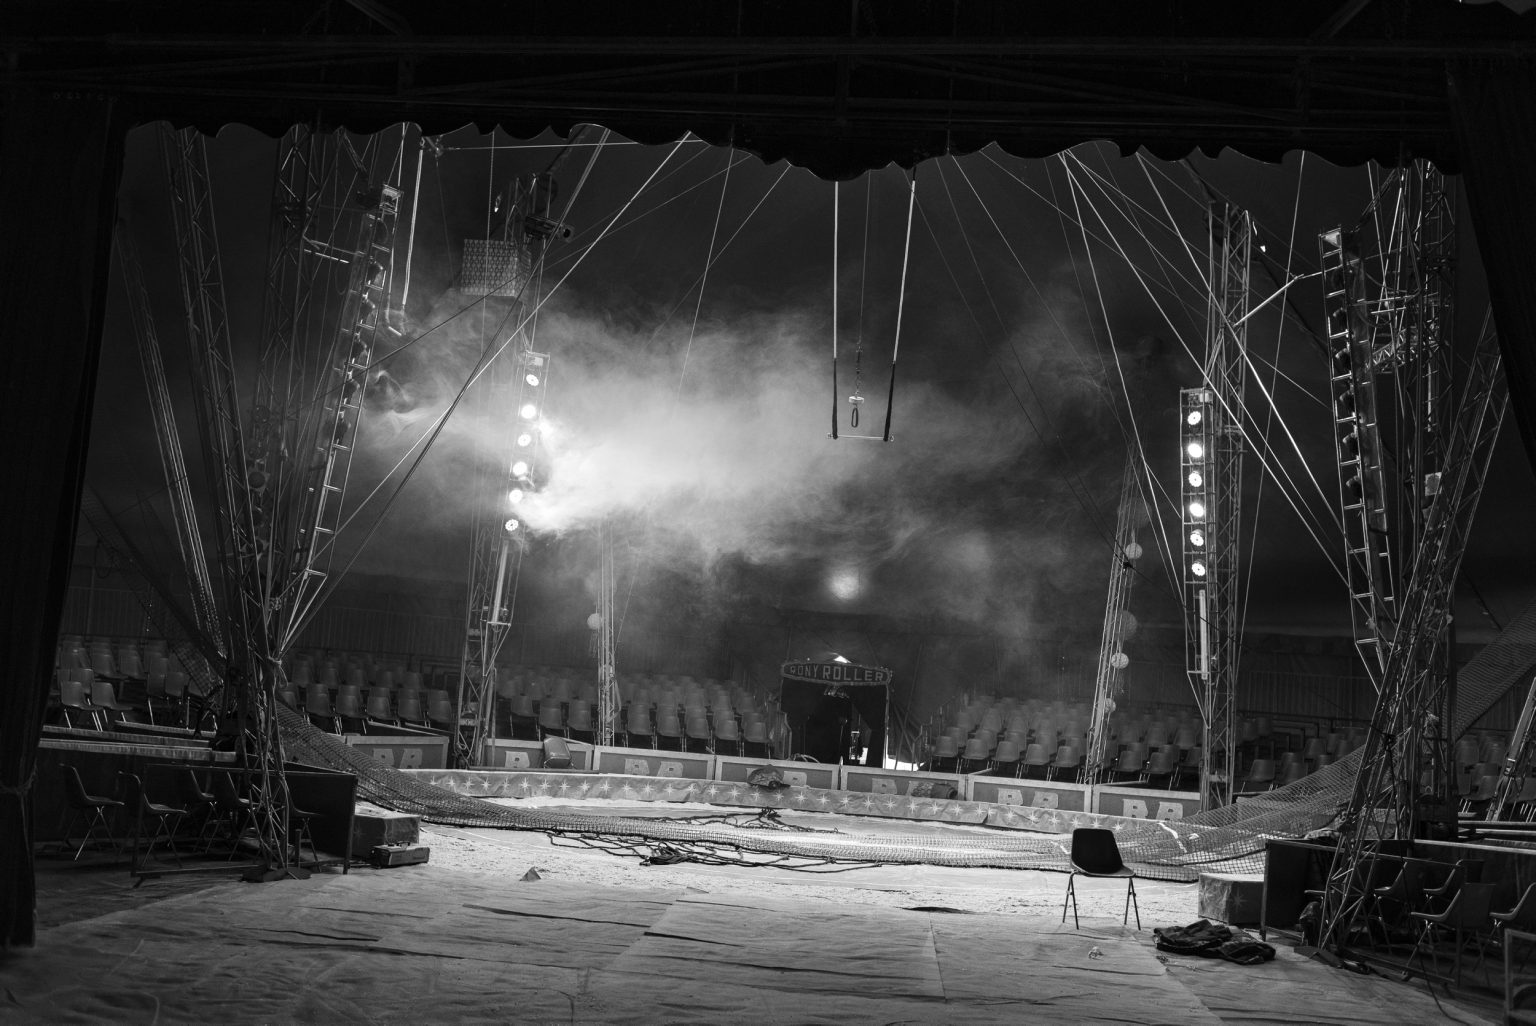 Rony Roller, circus of the Vassallo family. Circus life.  The empty circus in the morning before the afternoon show. Rome, Italy, 2017